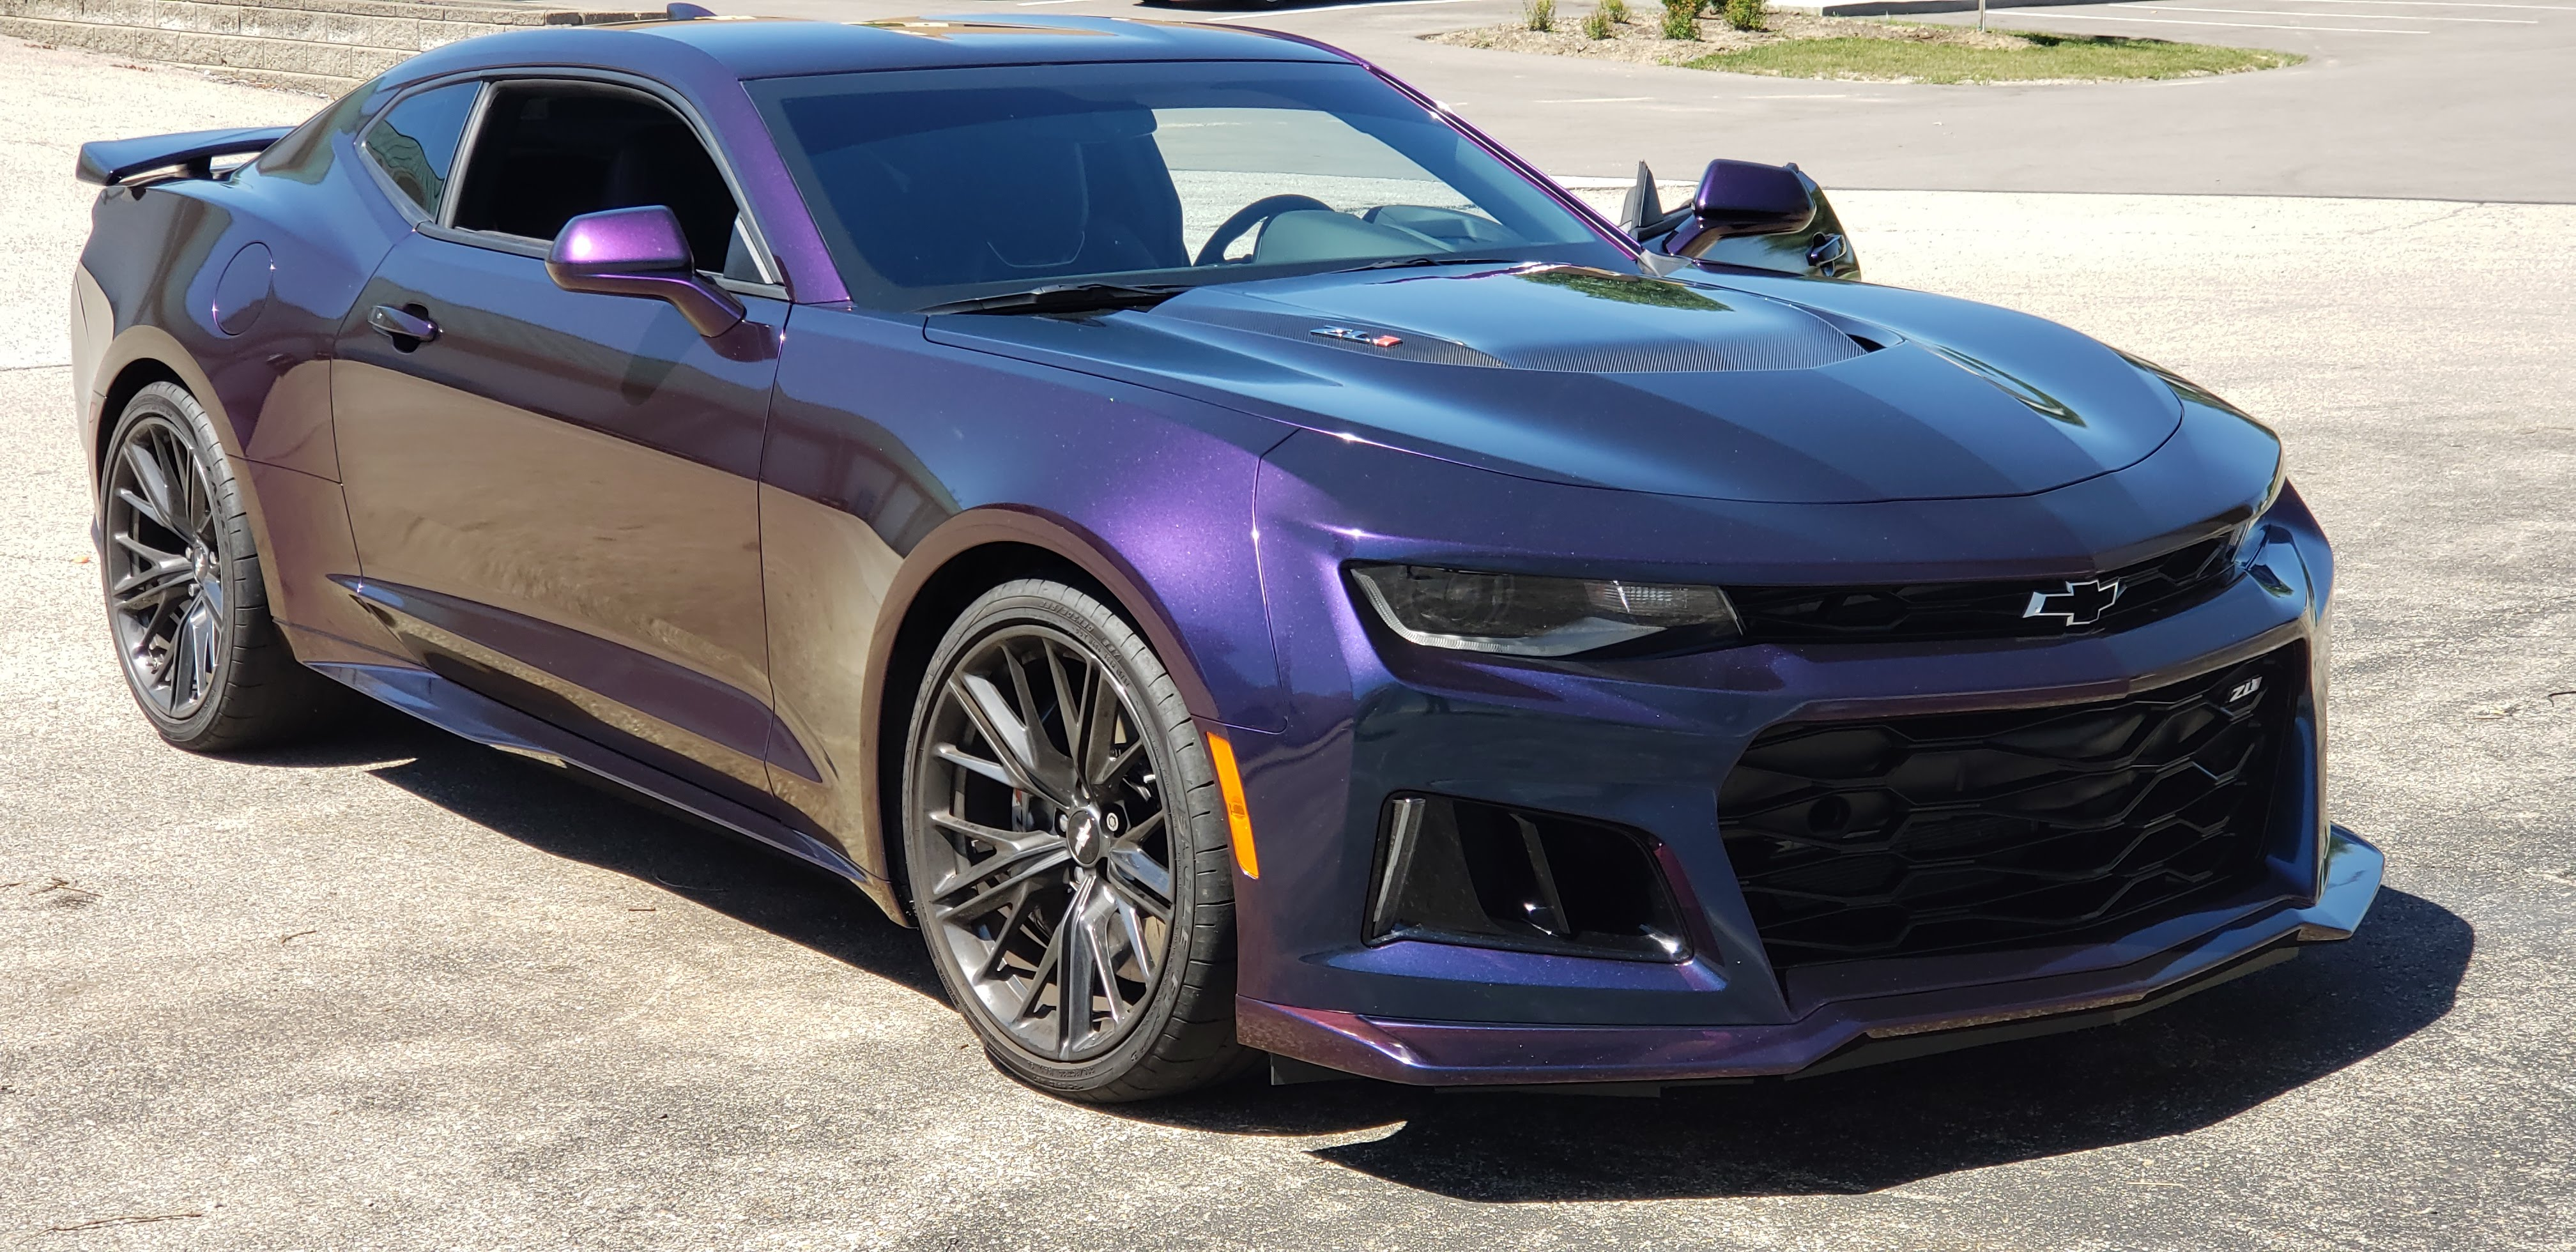 Cincy Vinyl Wraps ZL1 Deep Space (6)